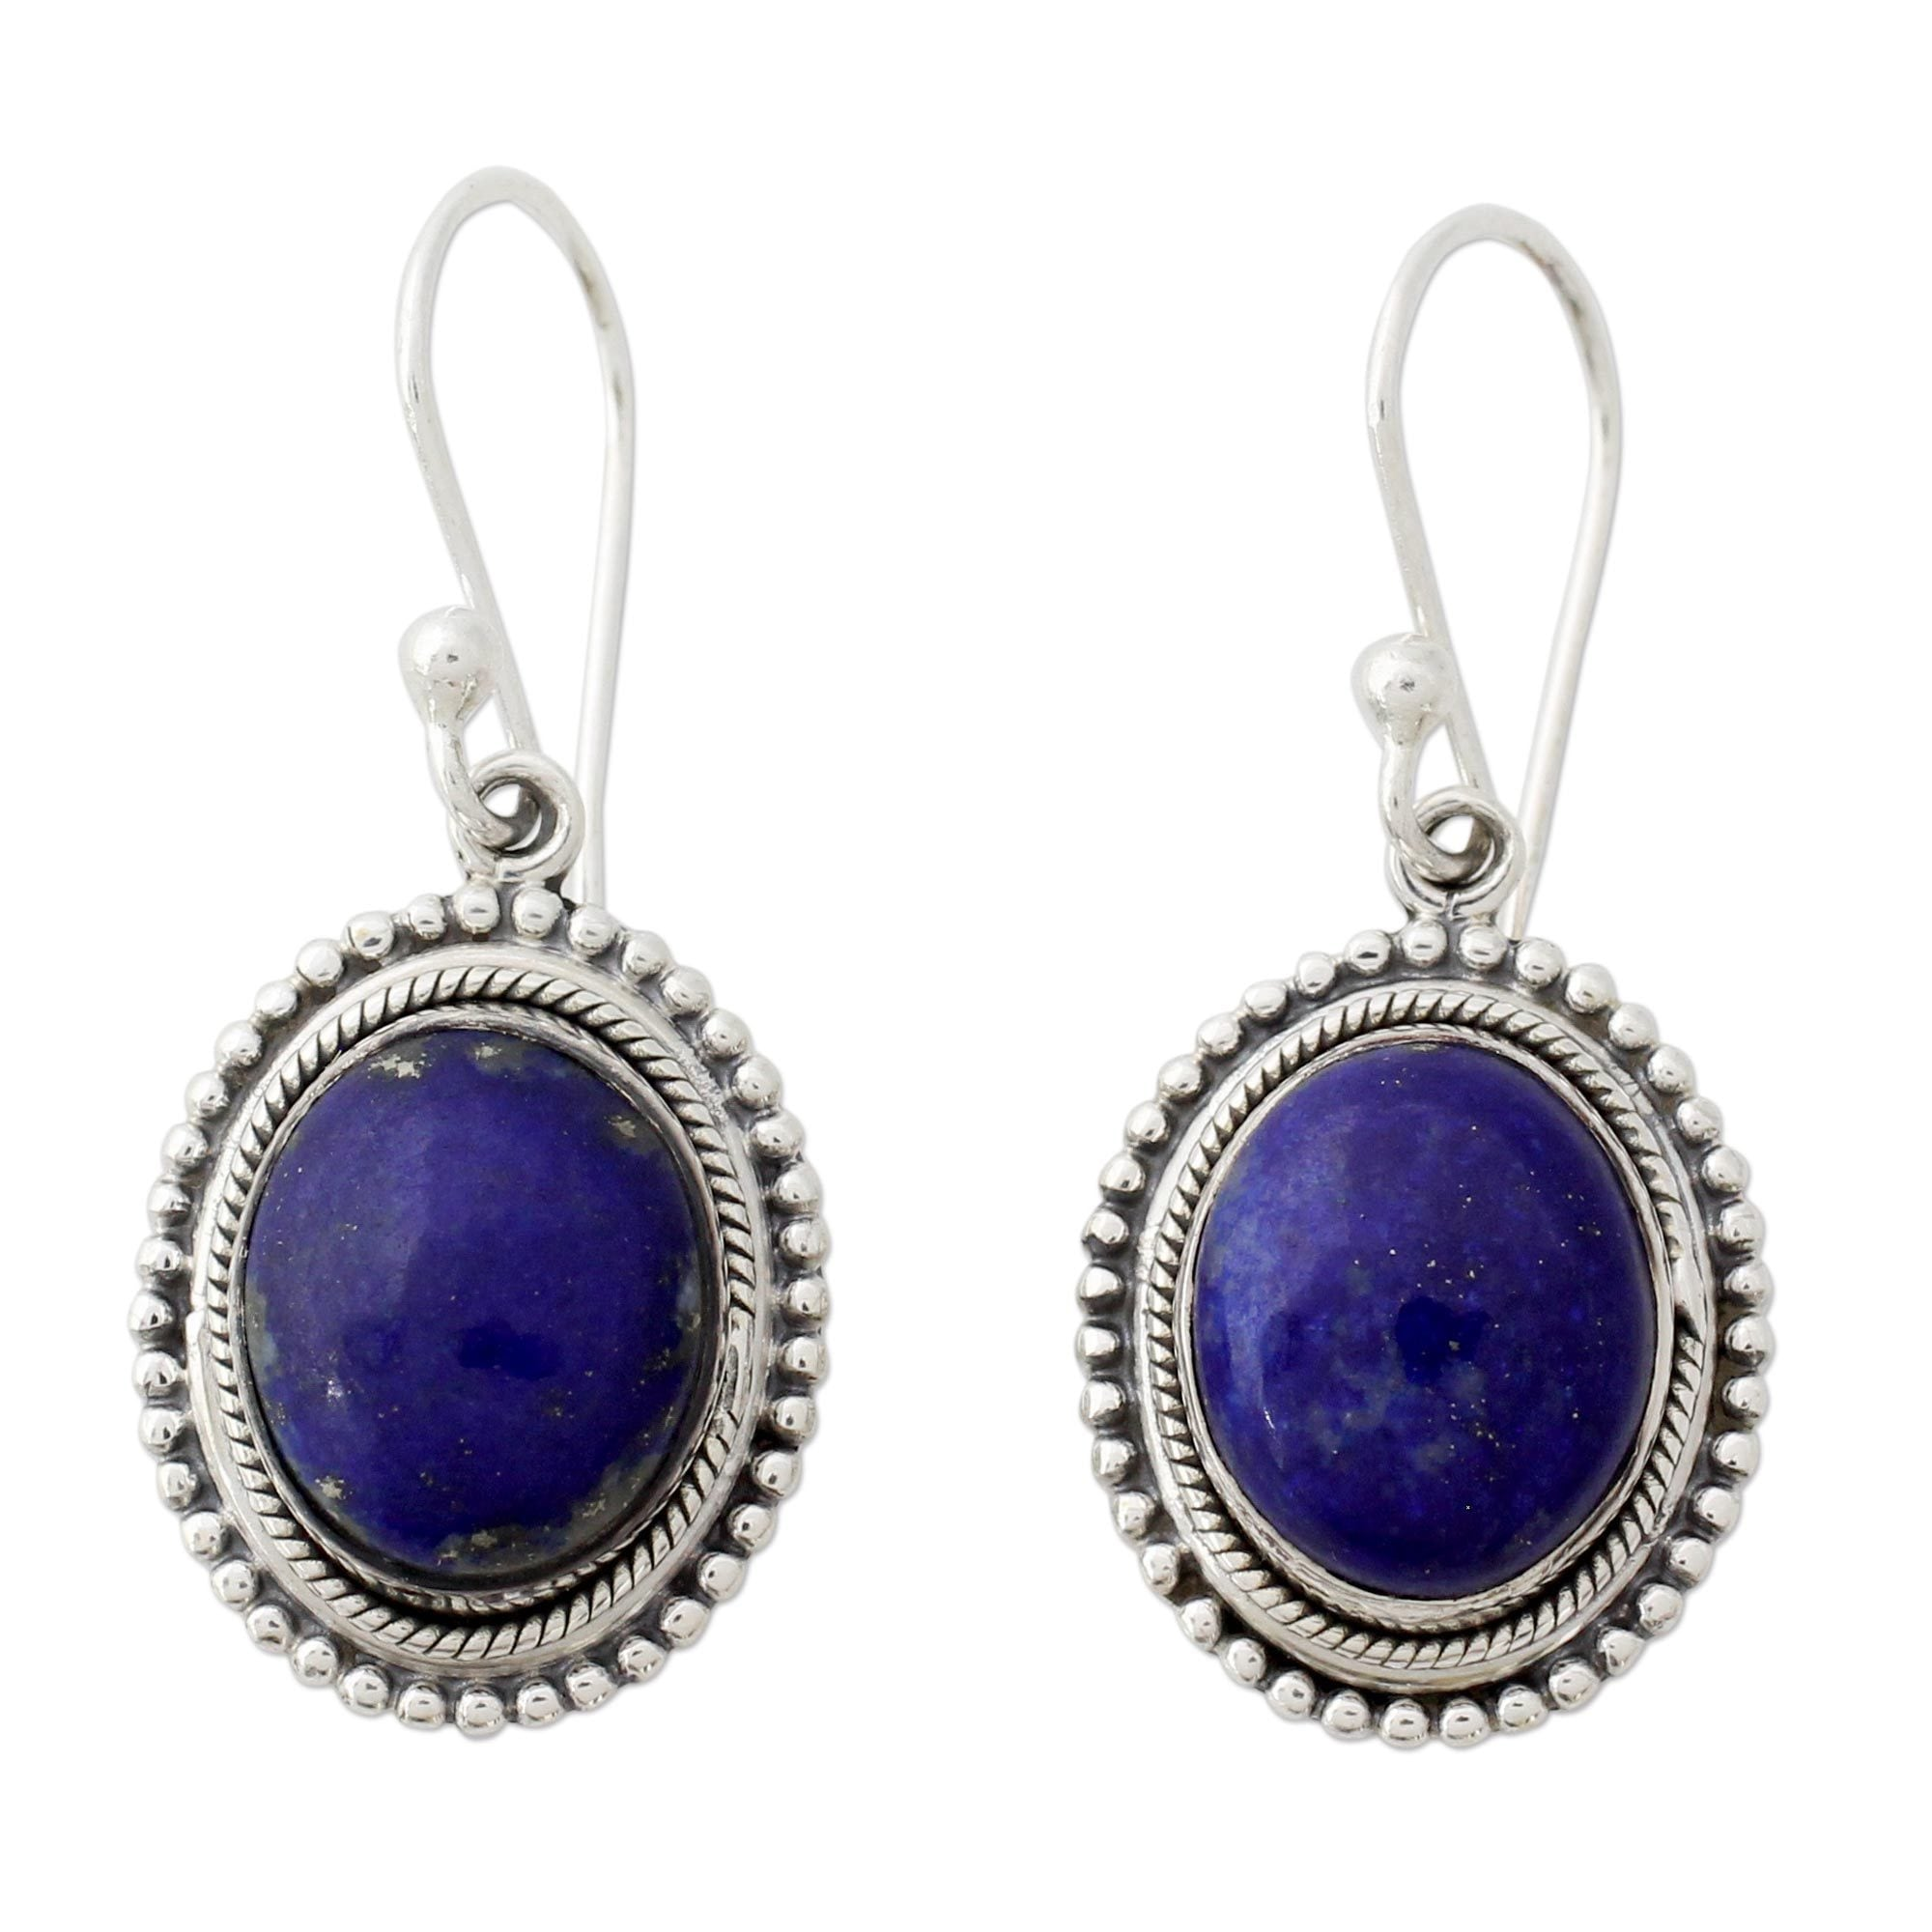 earrings turquoise lazuli lapis products holthus img house melissa mcarthur of